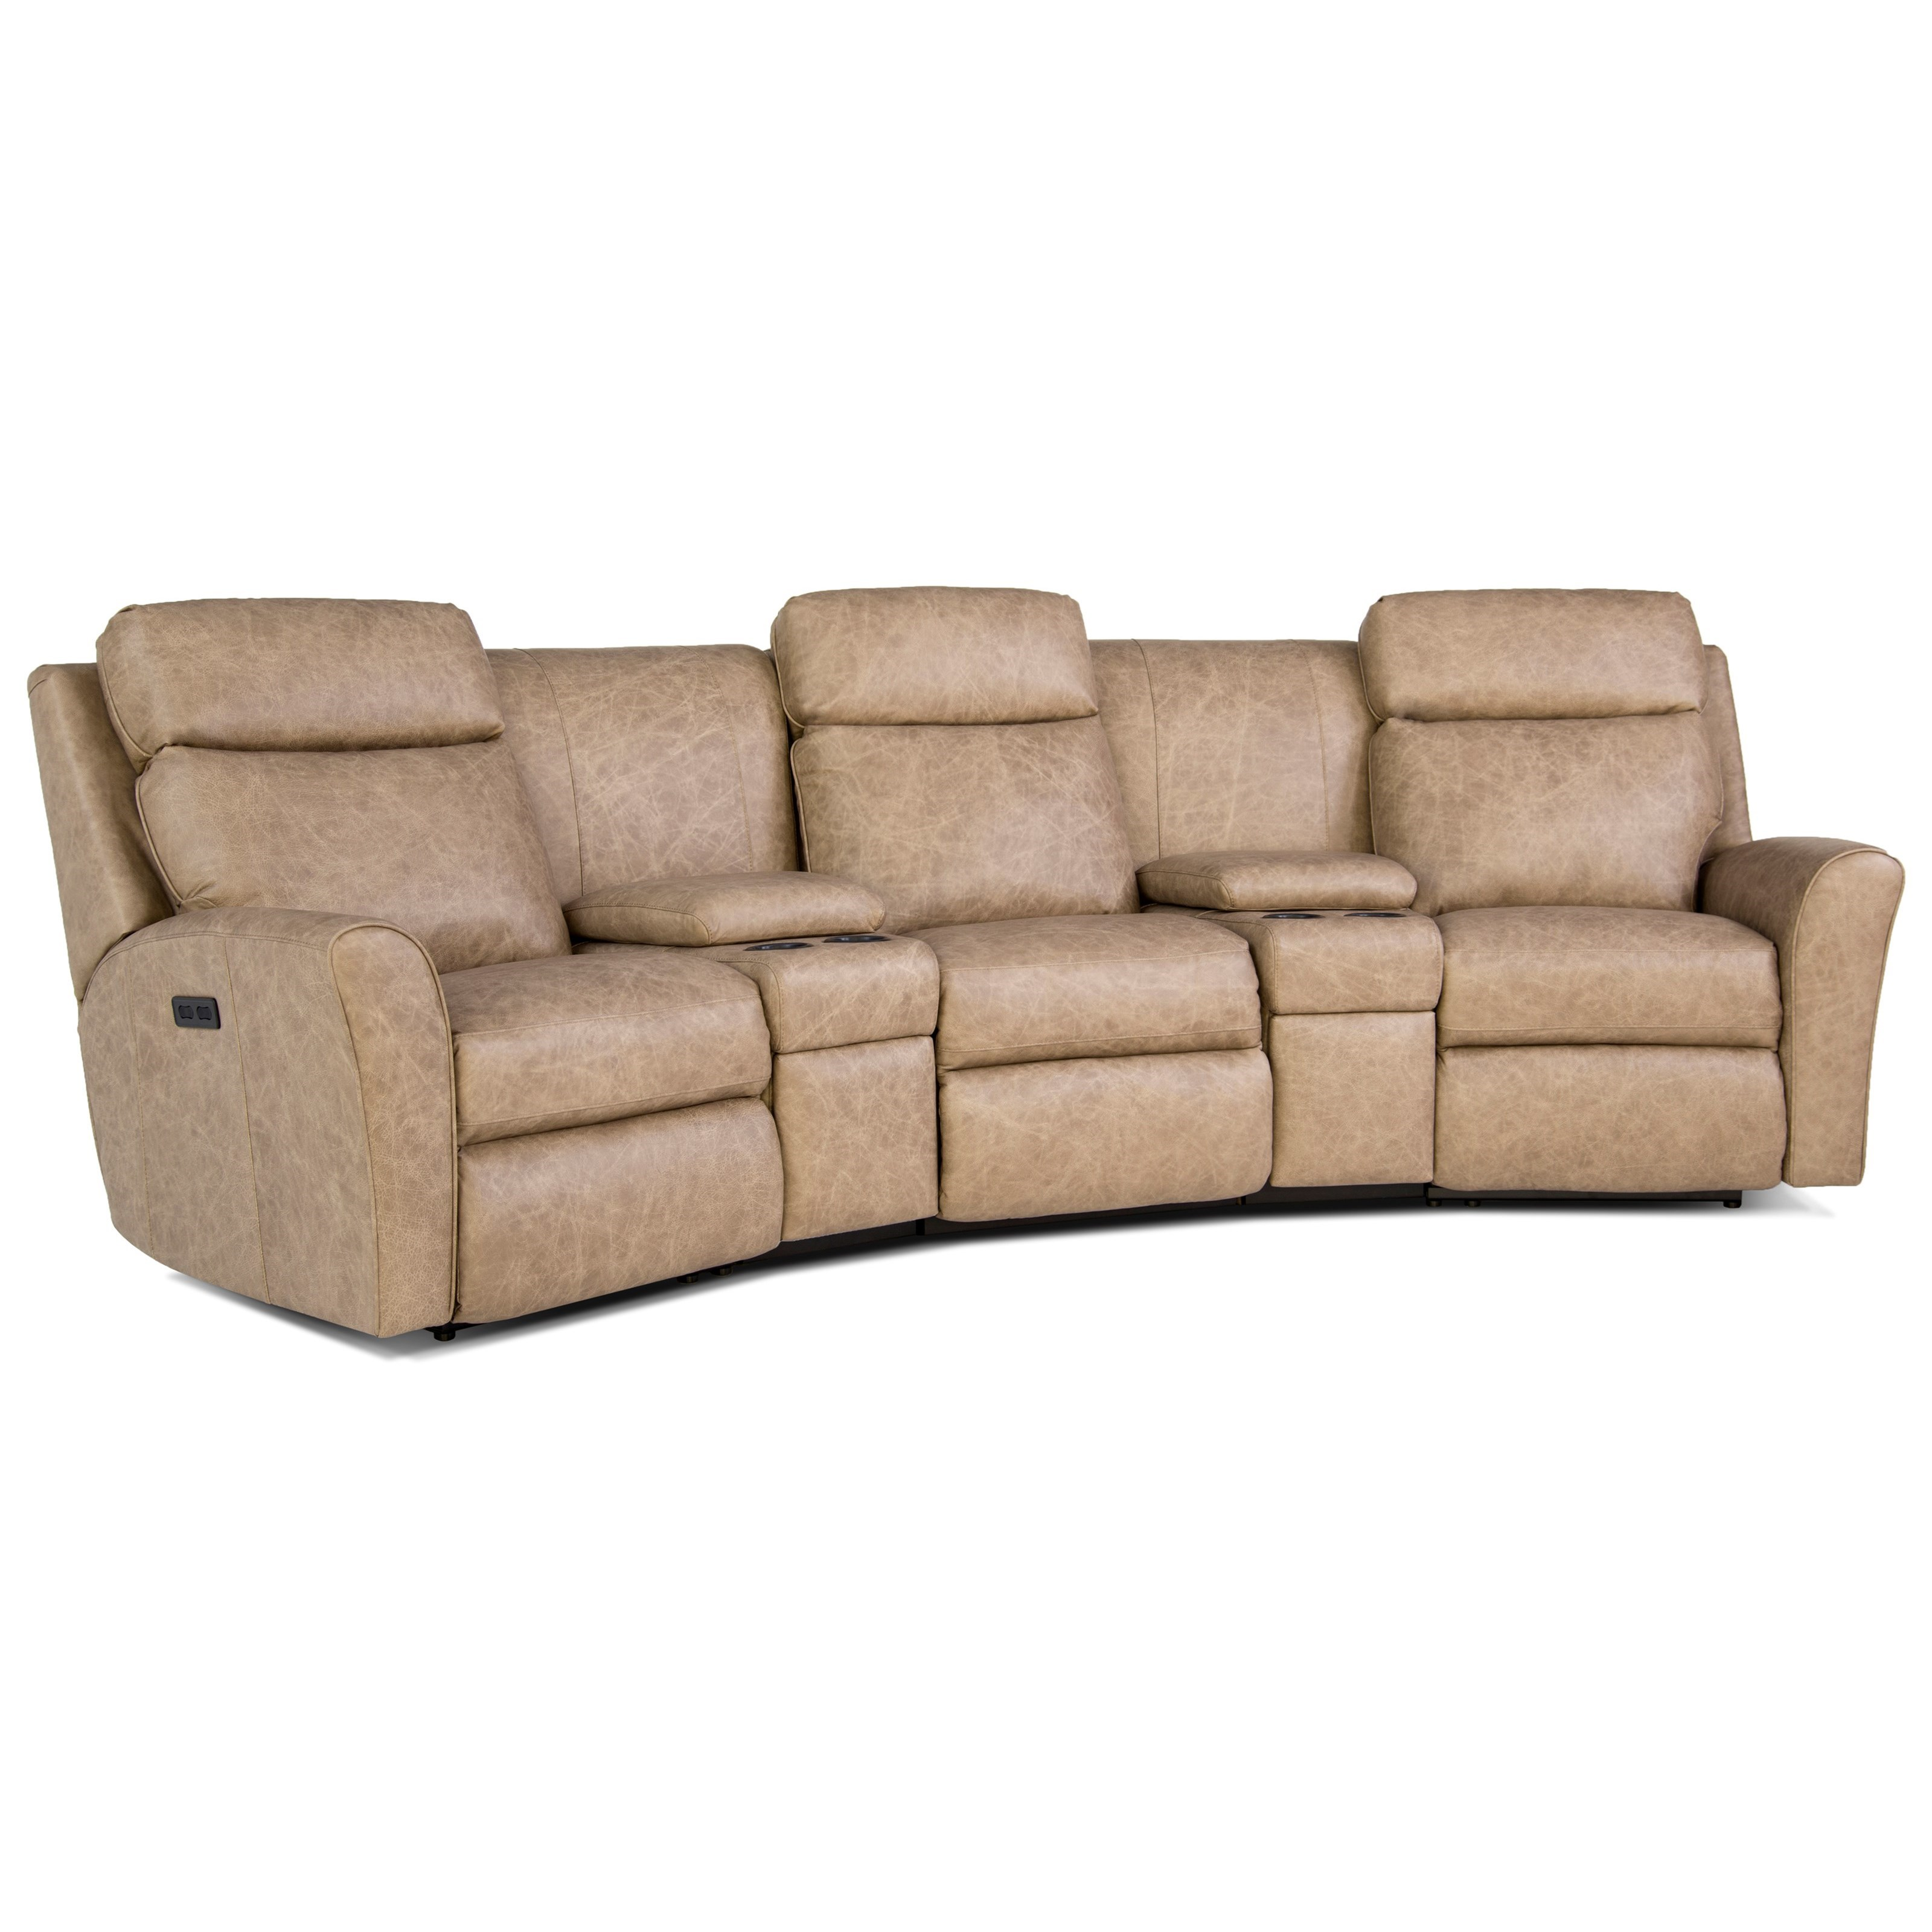 418 Motorized Reclining Conversation Sofa by Smith Brothers at Pilgrim Furniture City